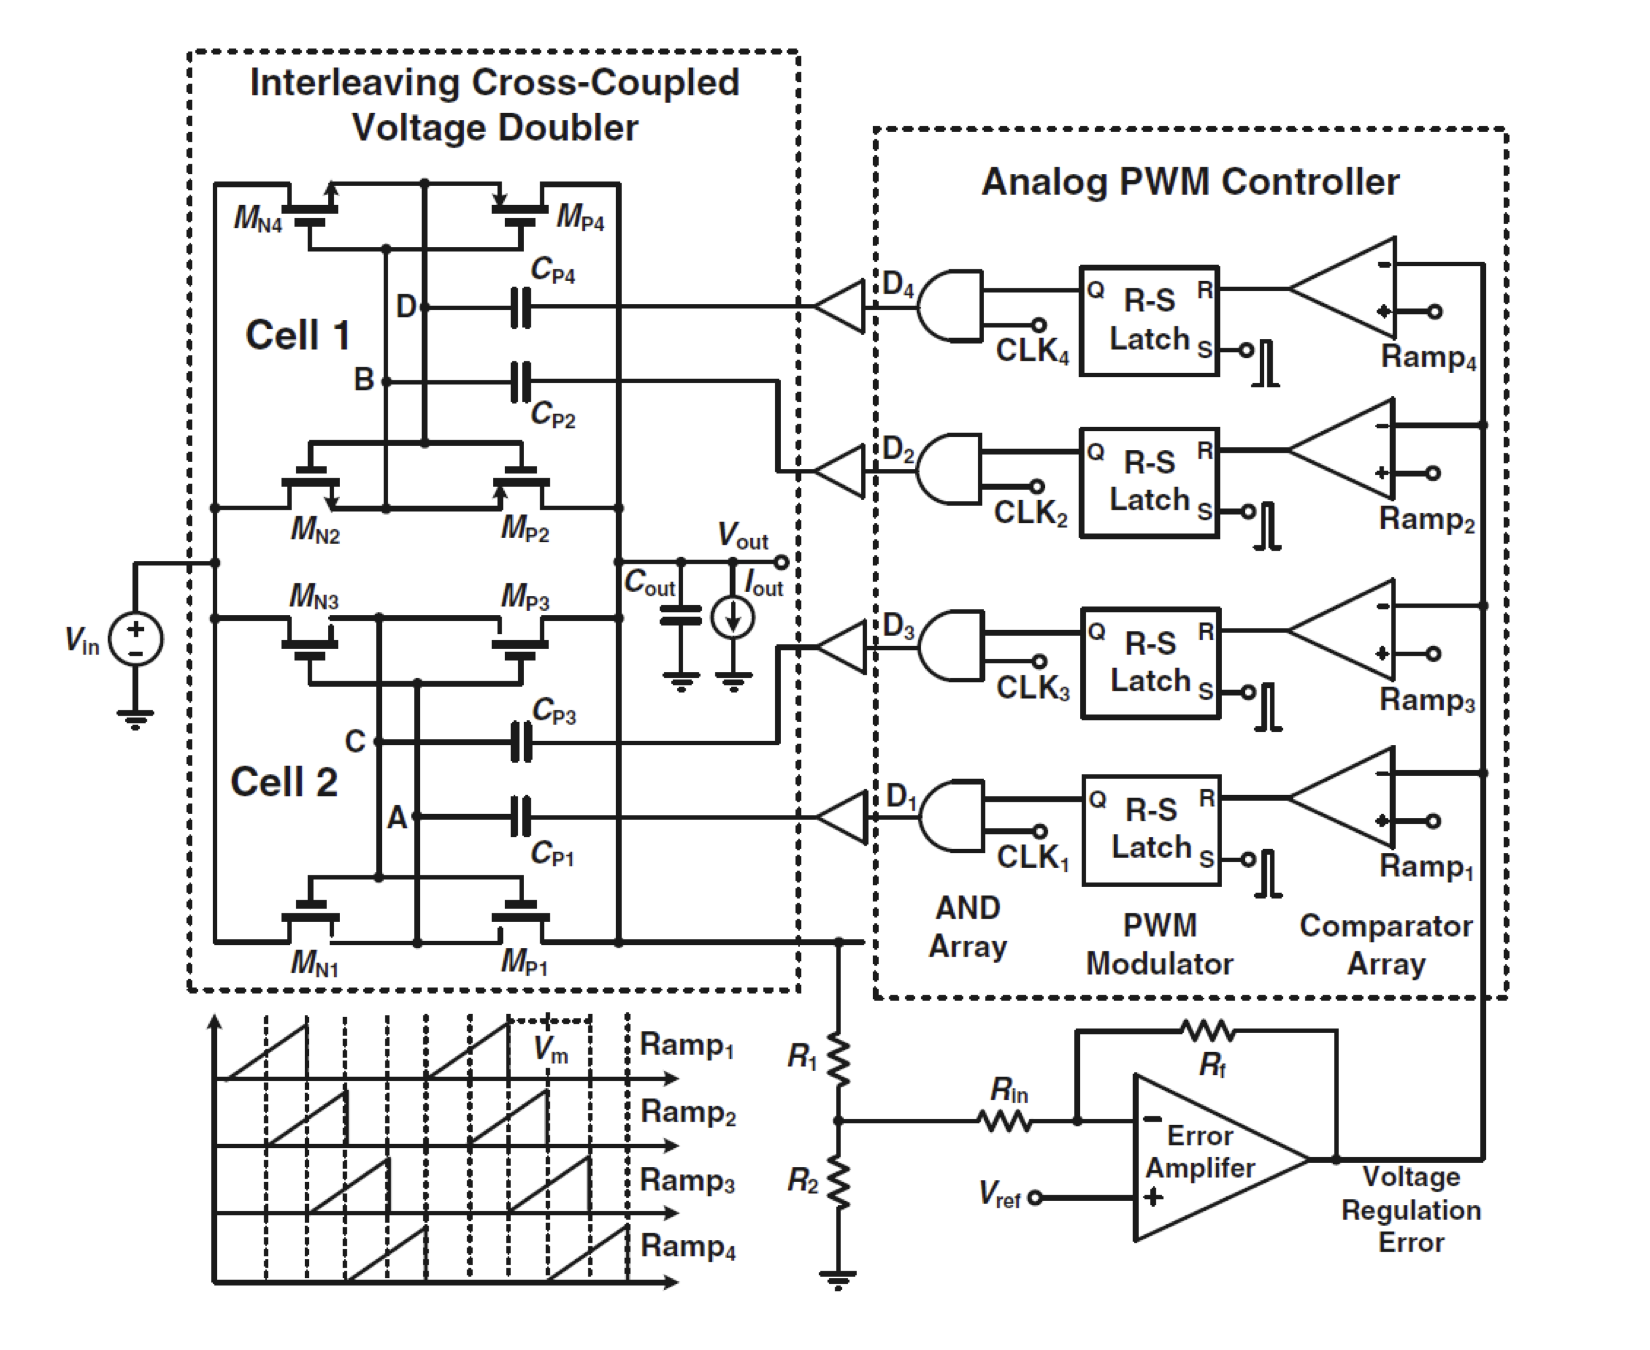 Z Transform Discrete Voltage Regulator Linear Regulators Switch Mode Power Converters And Switched Capacitor In This Paper We Aim At Formal Modeling Analysis Of